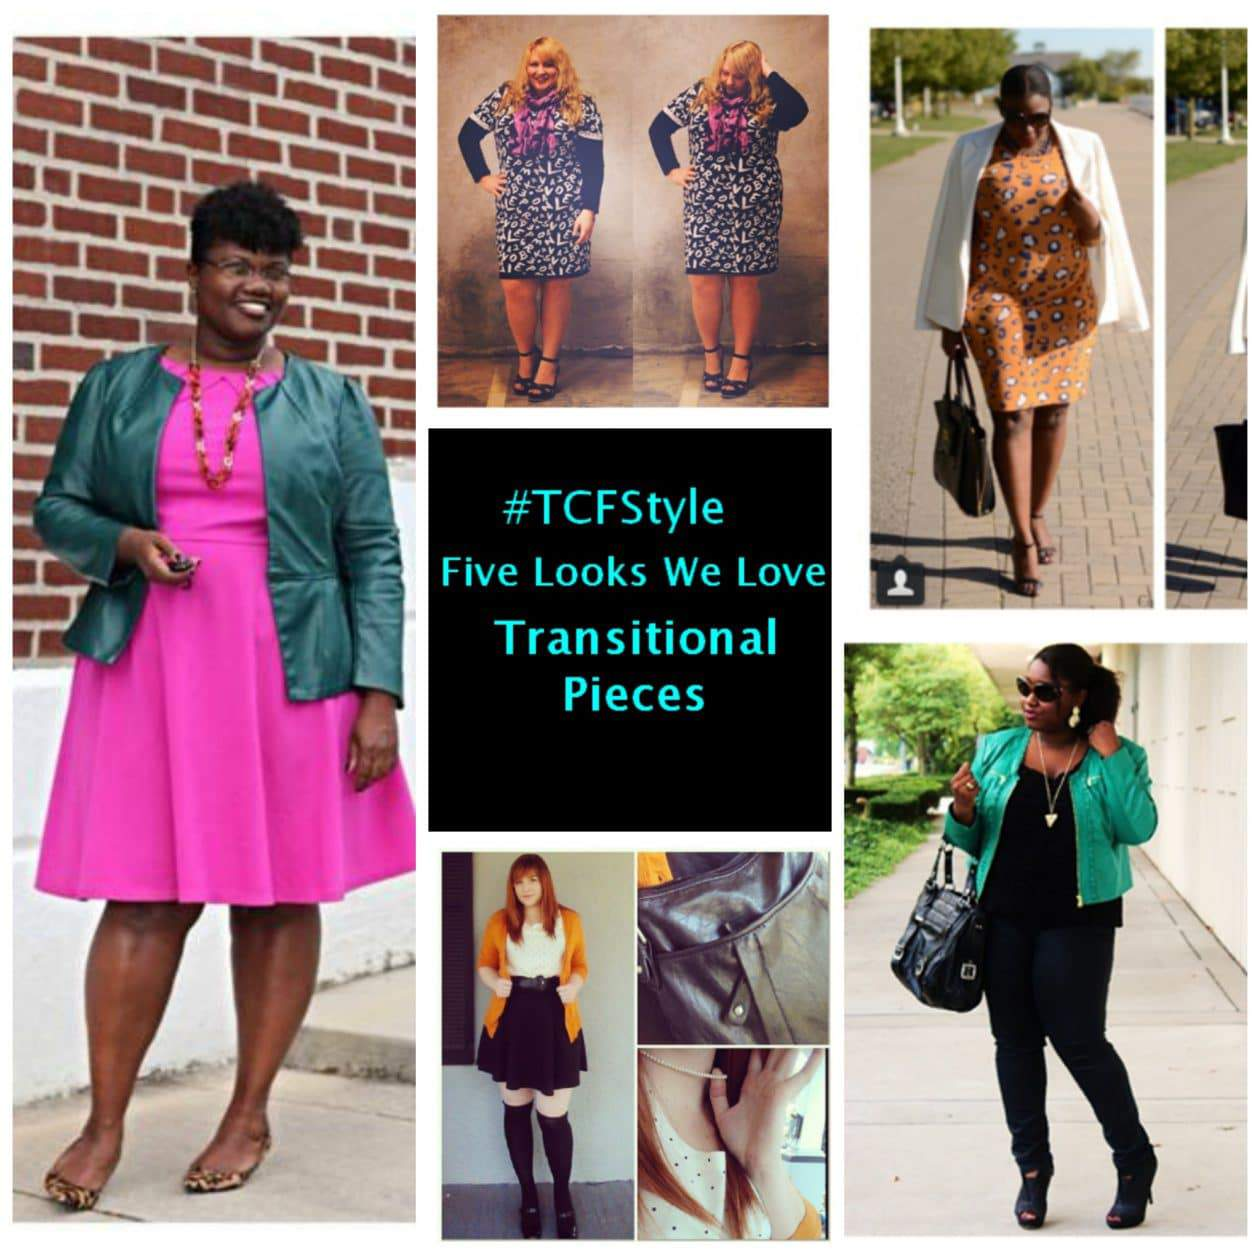 #TCFStyle: Five Looks We Love – Transitional Pieces